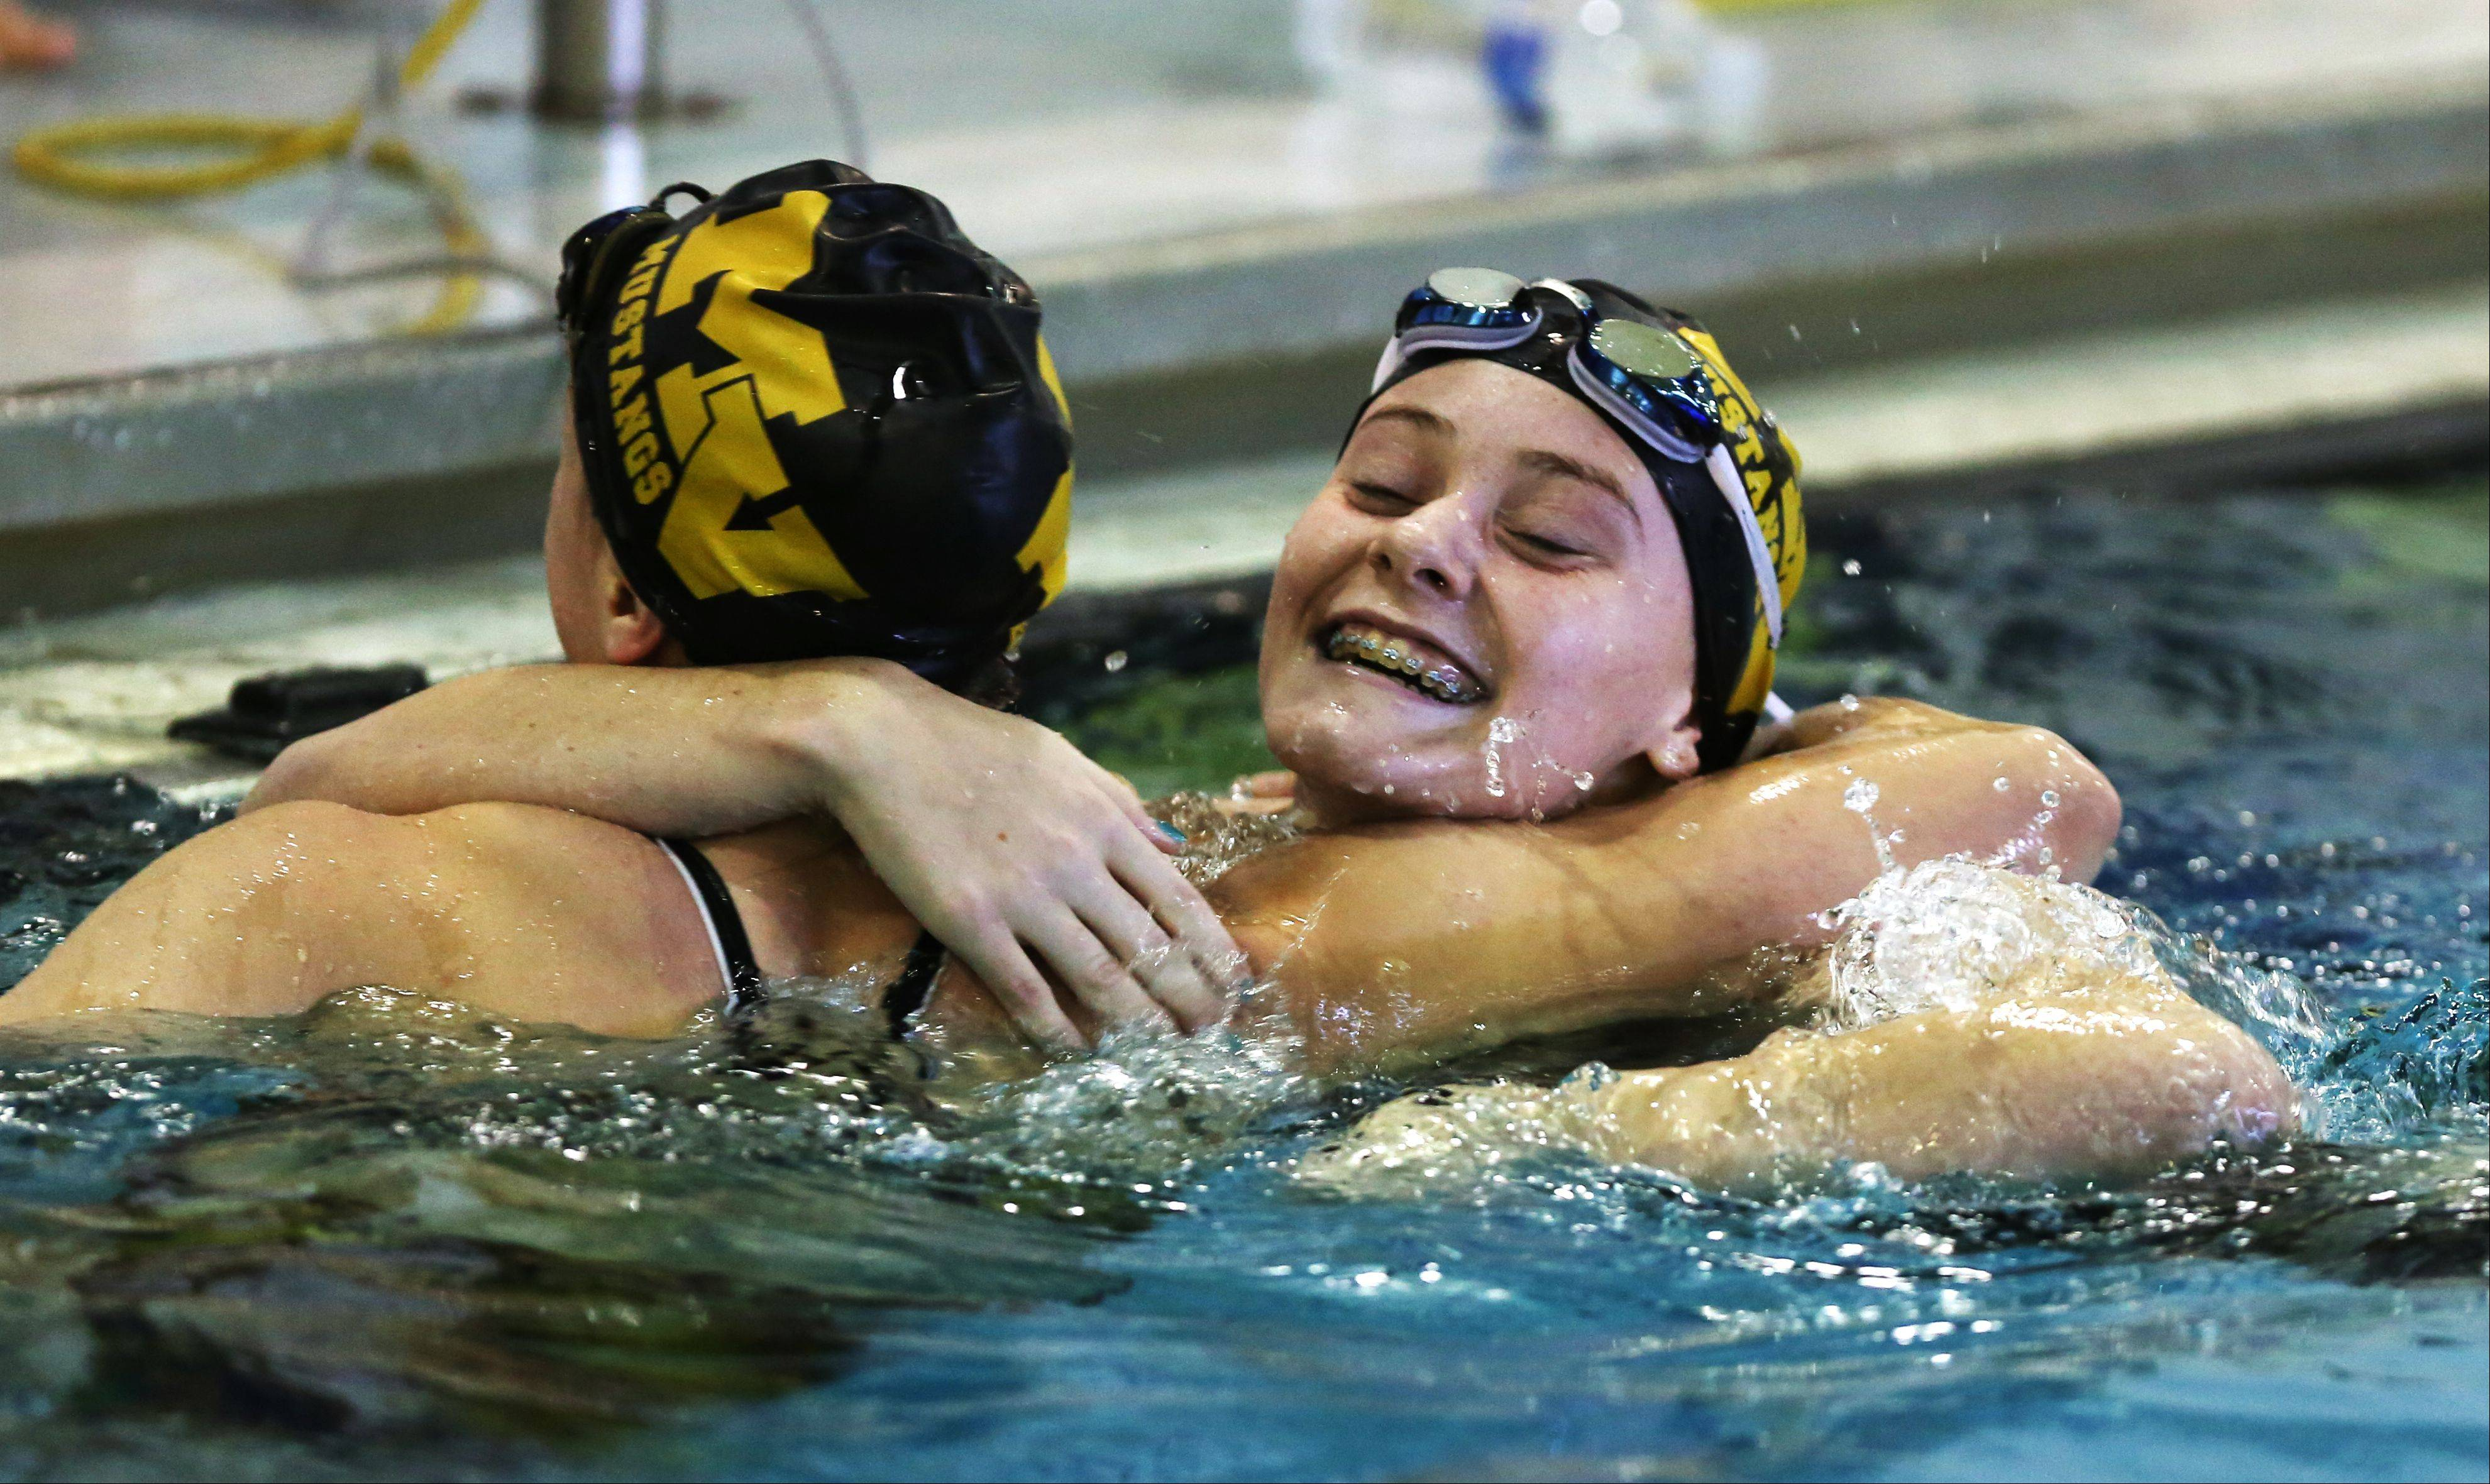 Metea Valley's Amanda Burson, right, hugs teammate Madie Sandberg, left, after winning the 50-yard freestyle, during the girls swimming's Wildcat Invite at West Chicago High School.